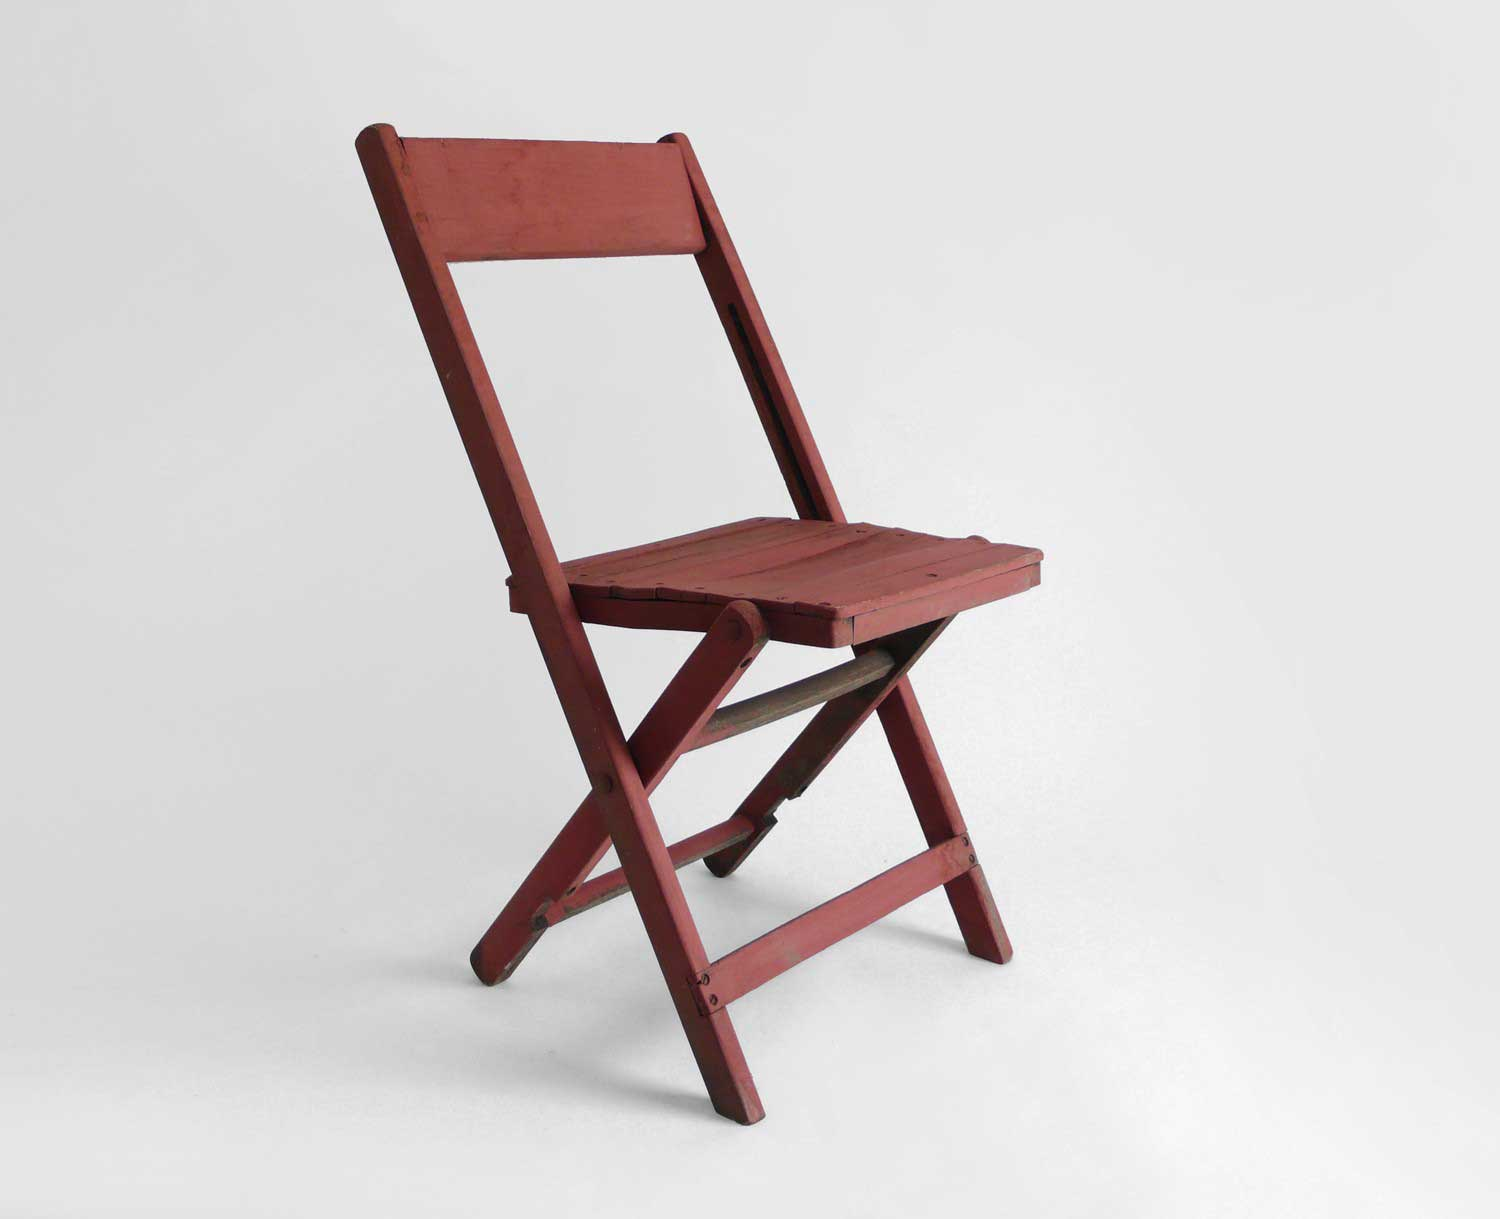 Hindsvik Vintage Wood Folding Rustic Chair